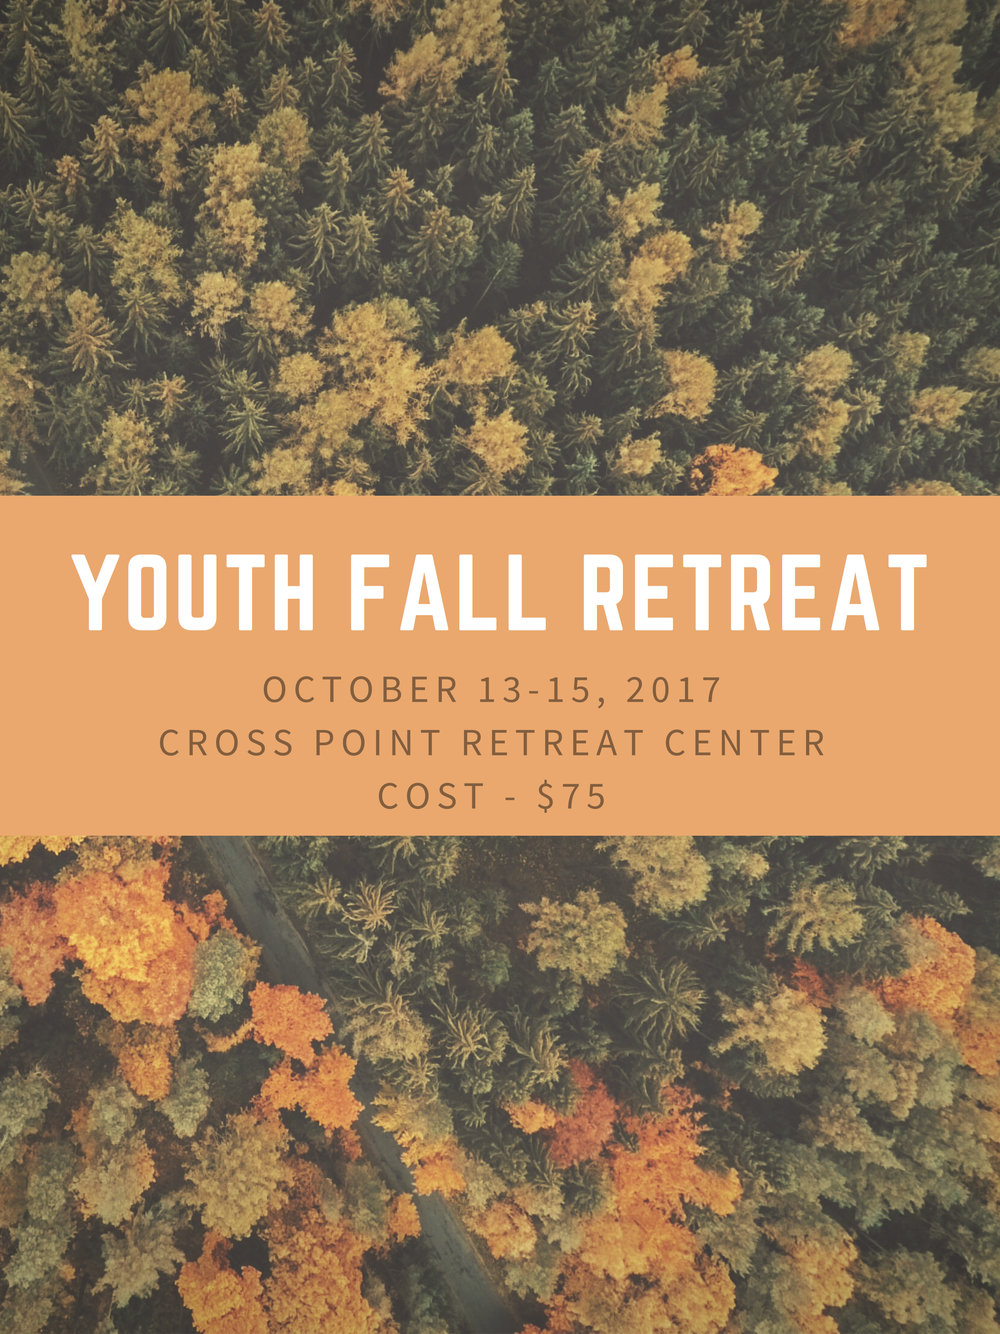 youth fall retreat.jpg